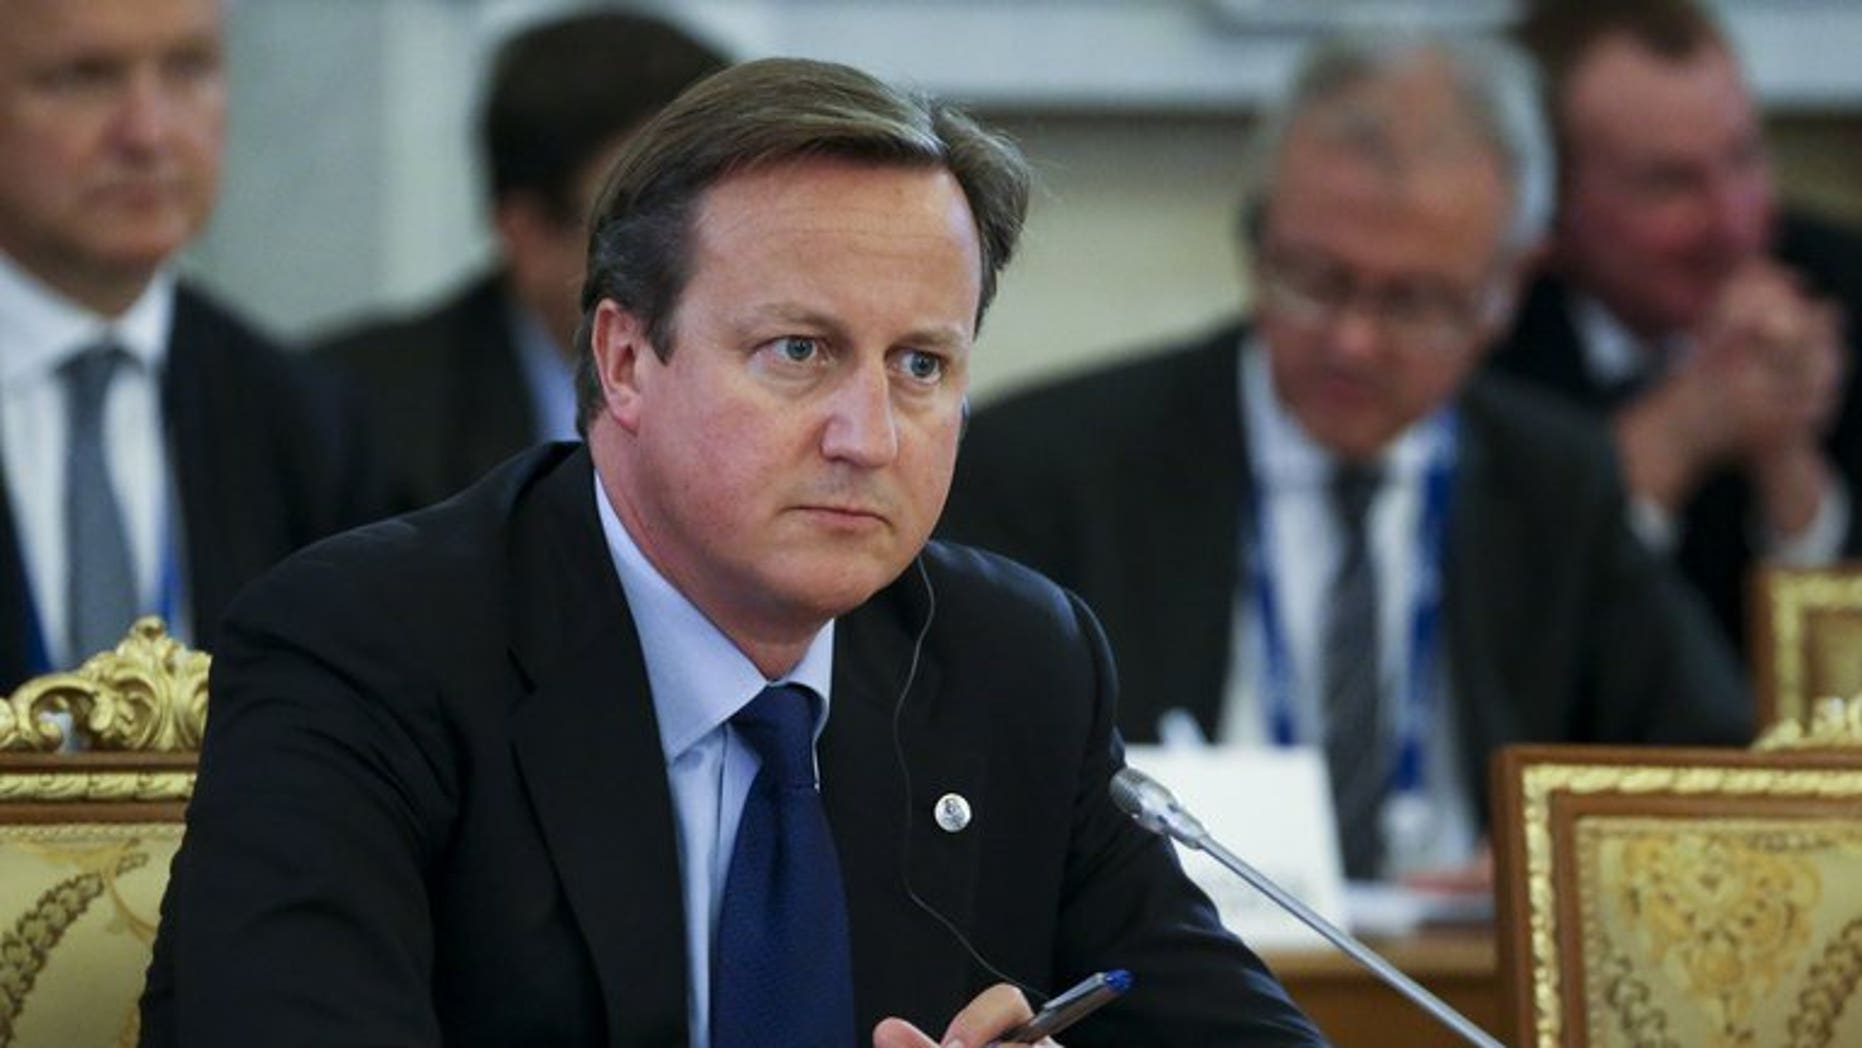 Britain's Prime Minister David Cameron attends the first working session at the G20 summit on September 5, 2013 in Saint Petersburg. Cameron said on Thursday that Britain had further evidence of the use of chemical weapons in Syria, which a British source said confirmed the use of sarin.